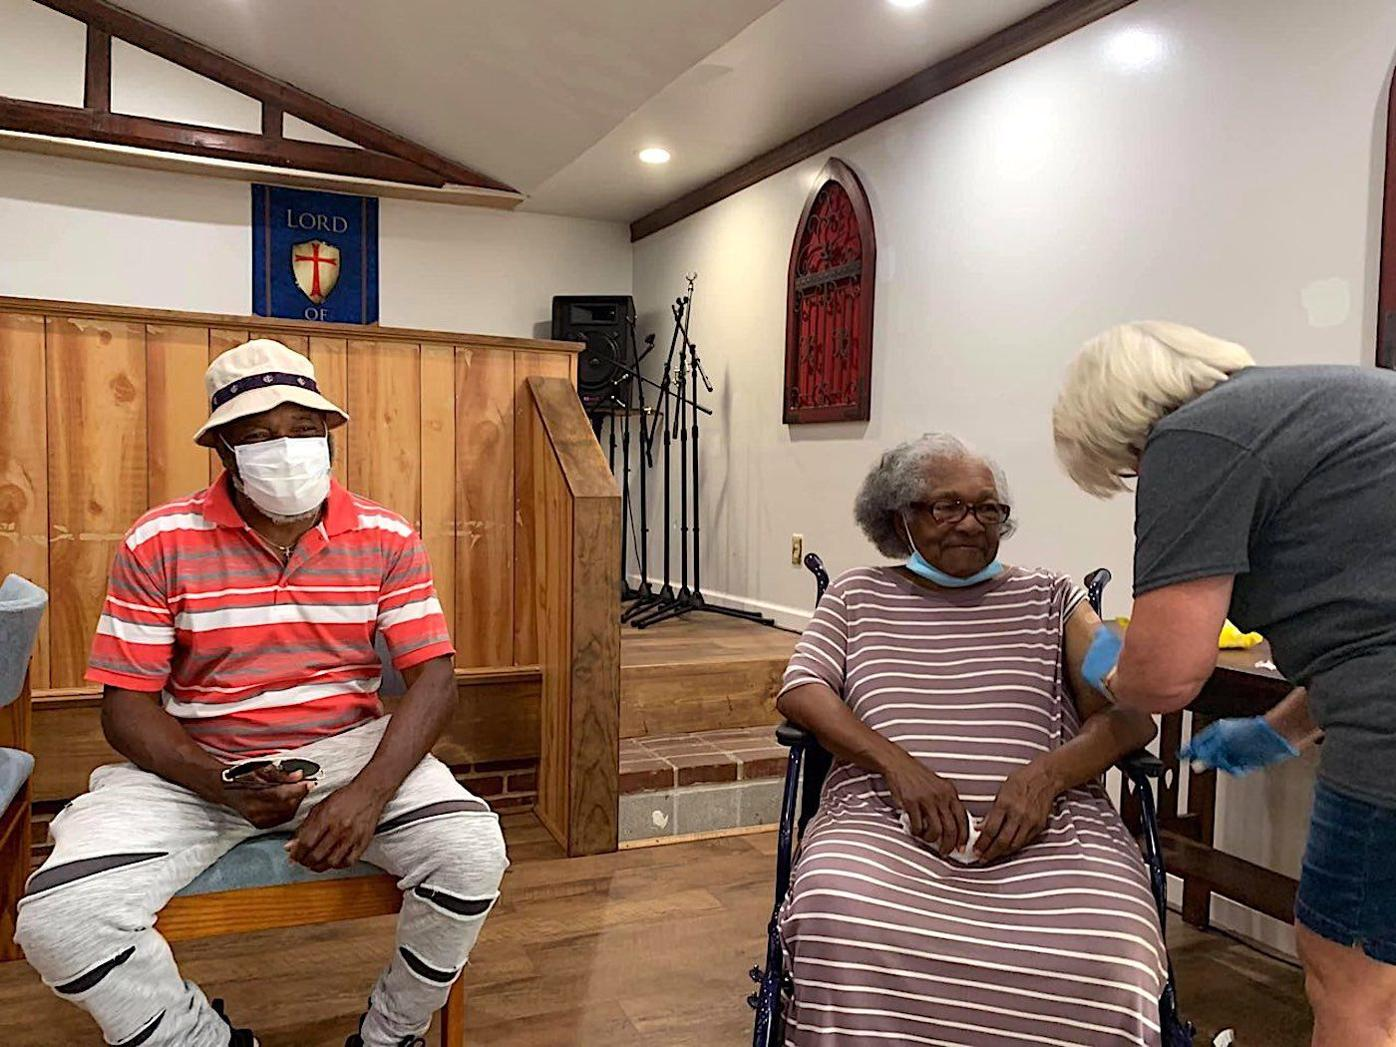 St. John's Holiness Church hosts another COVID-19 vaccination clinic